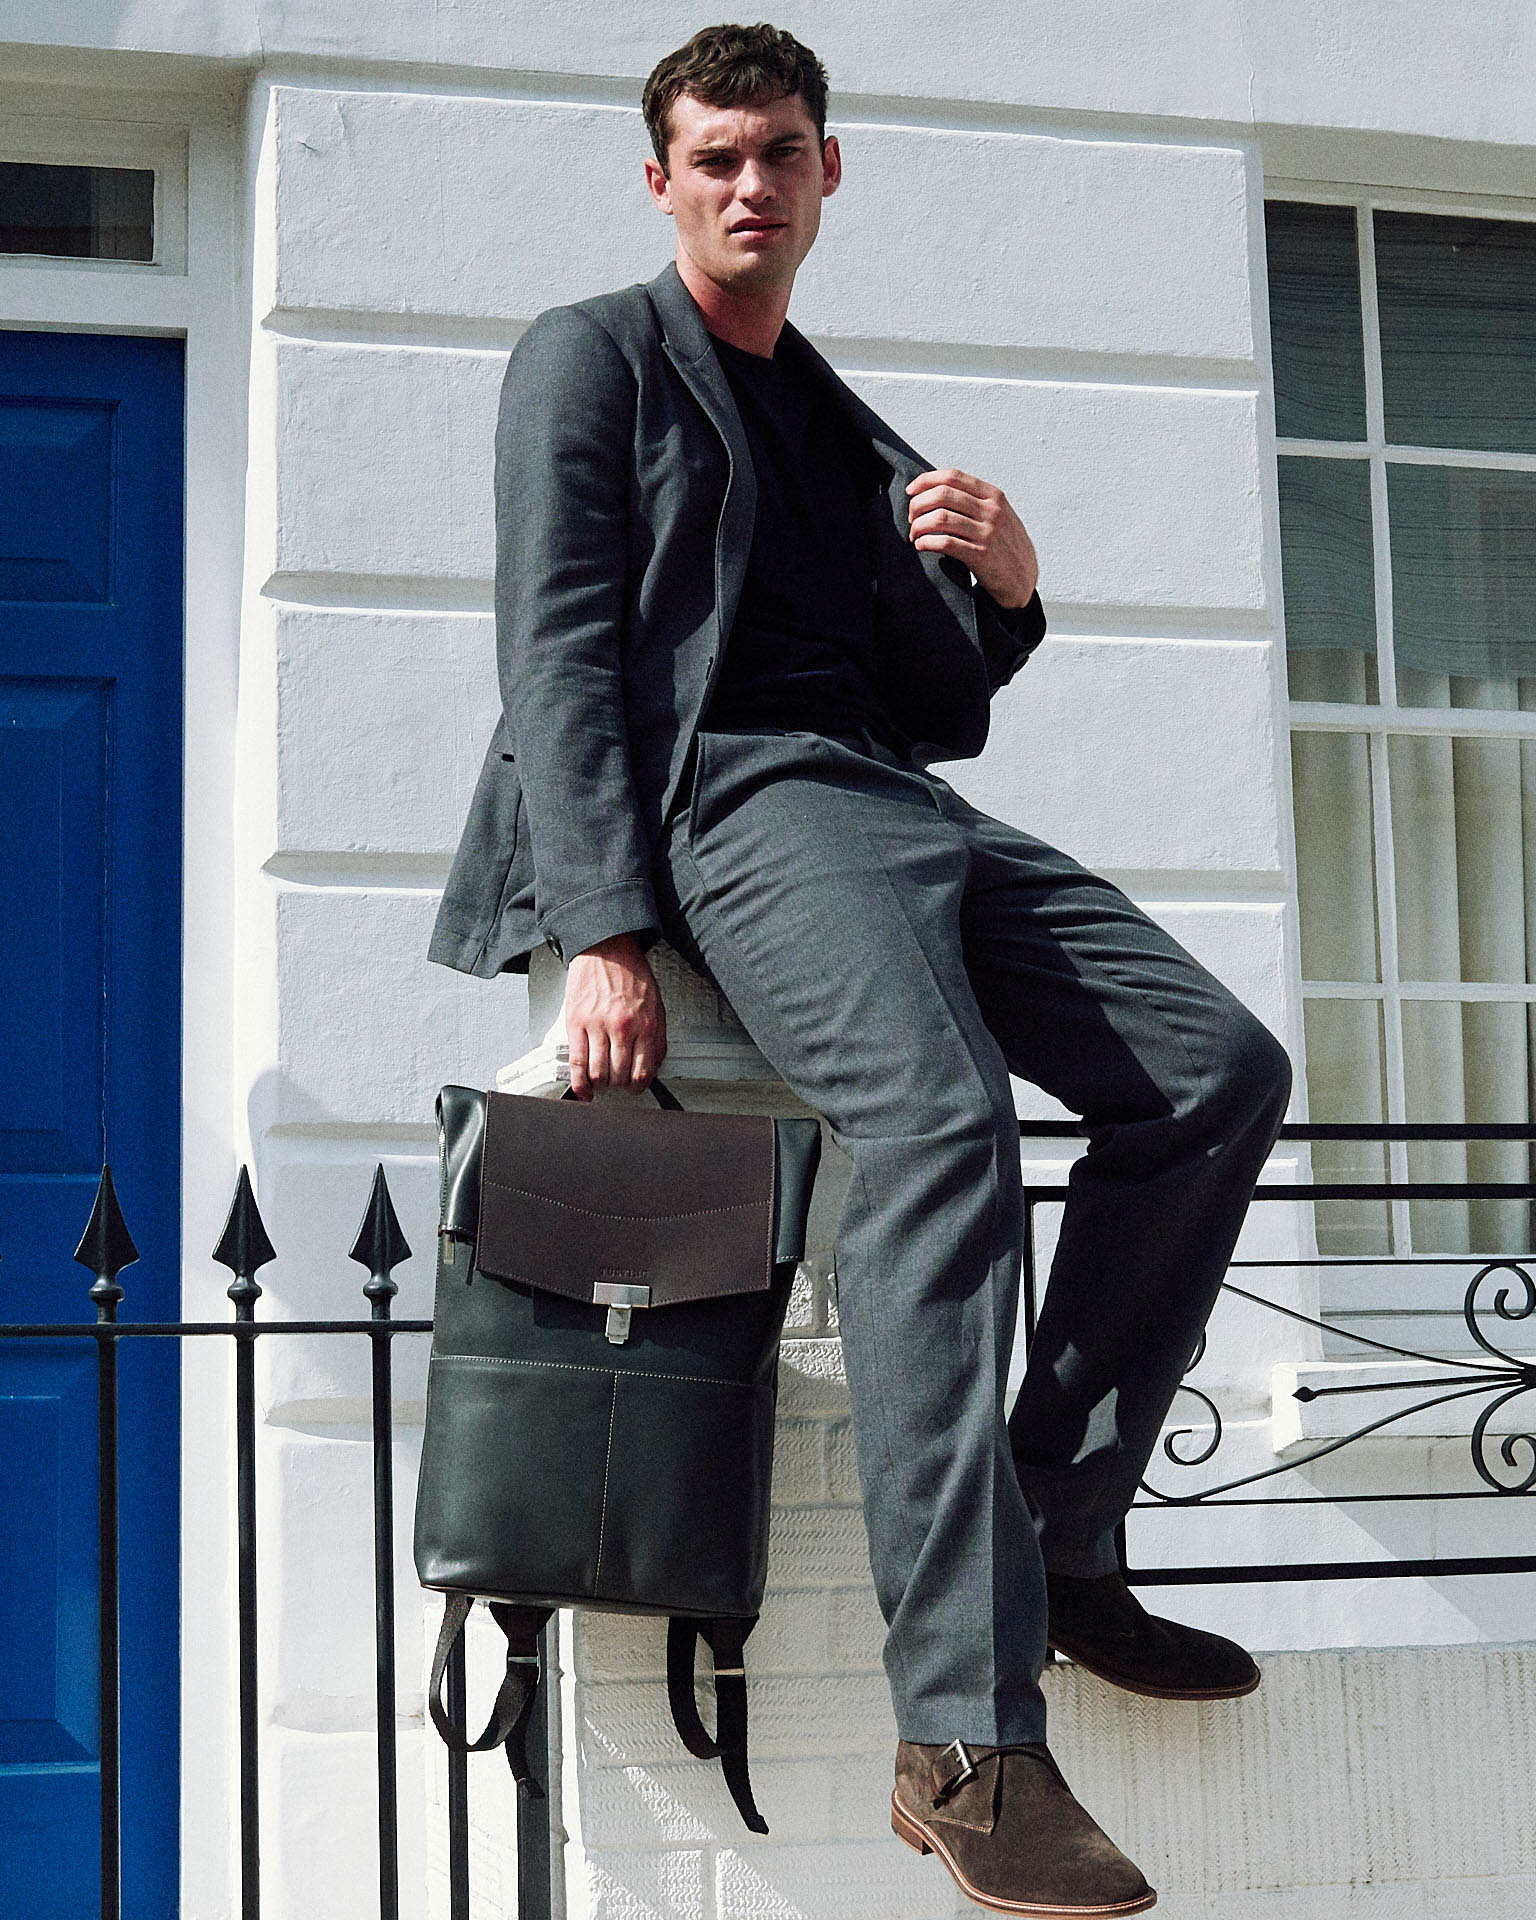 Man in grey suit, sits on white wall holding leather bag by lifestyle photographer Tim Cole